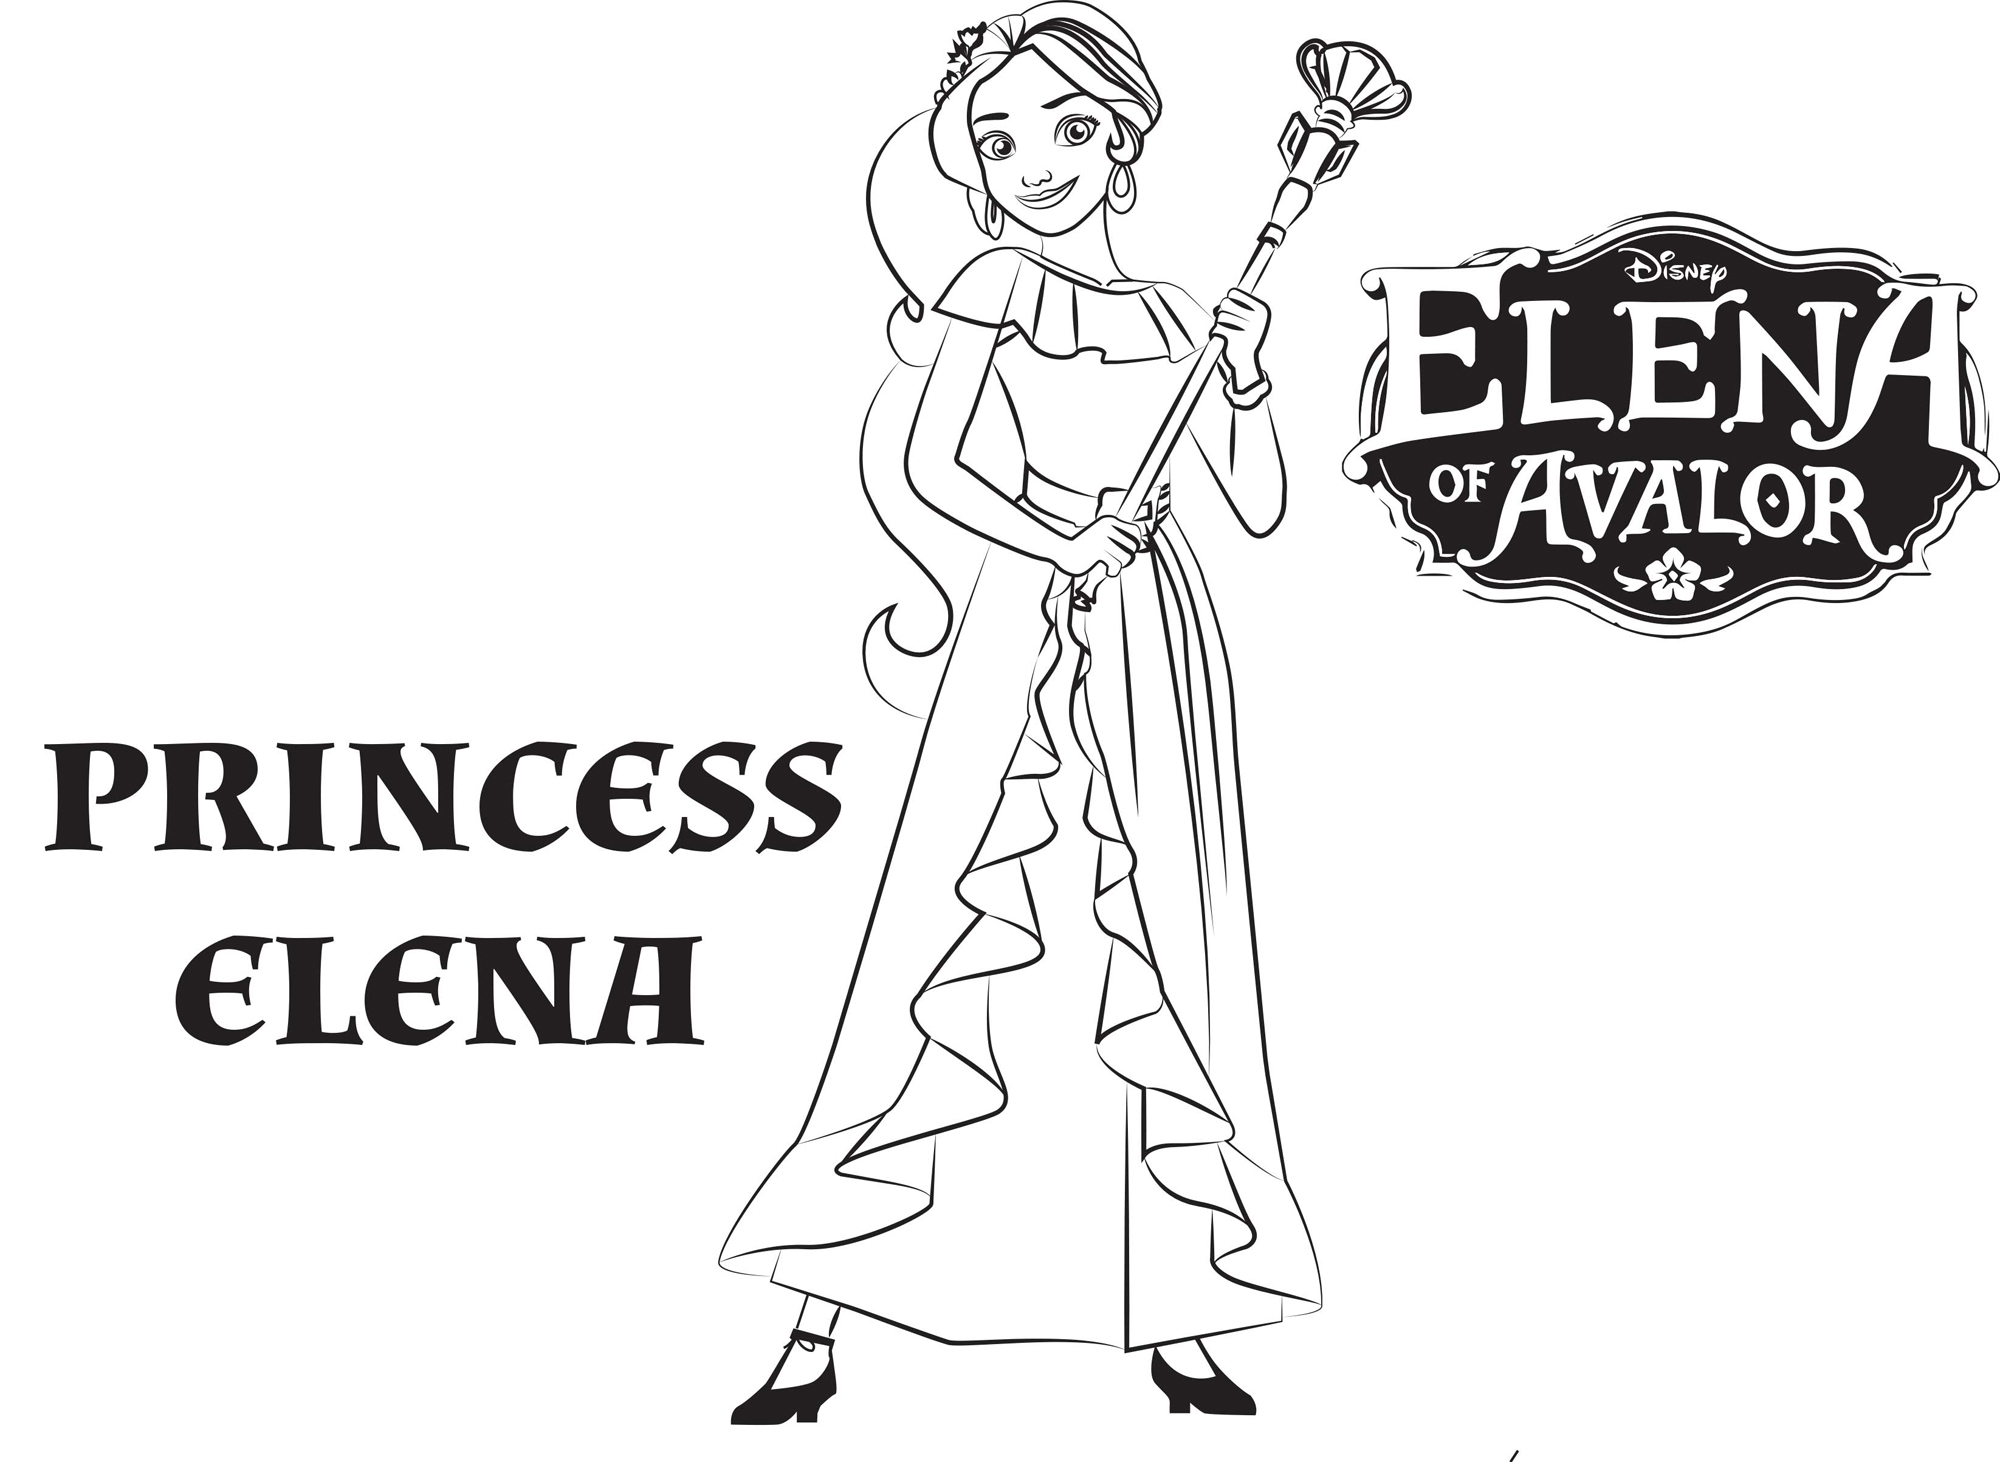 It's just a photo of Smart princess elena coloring page